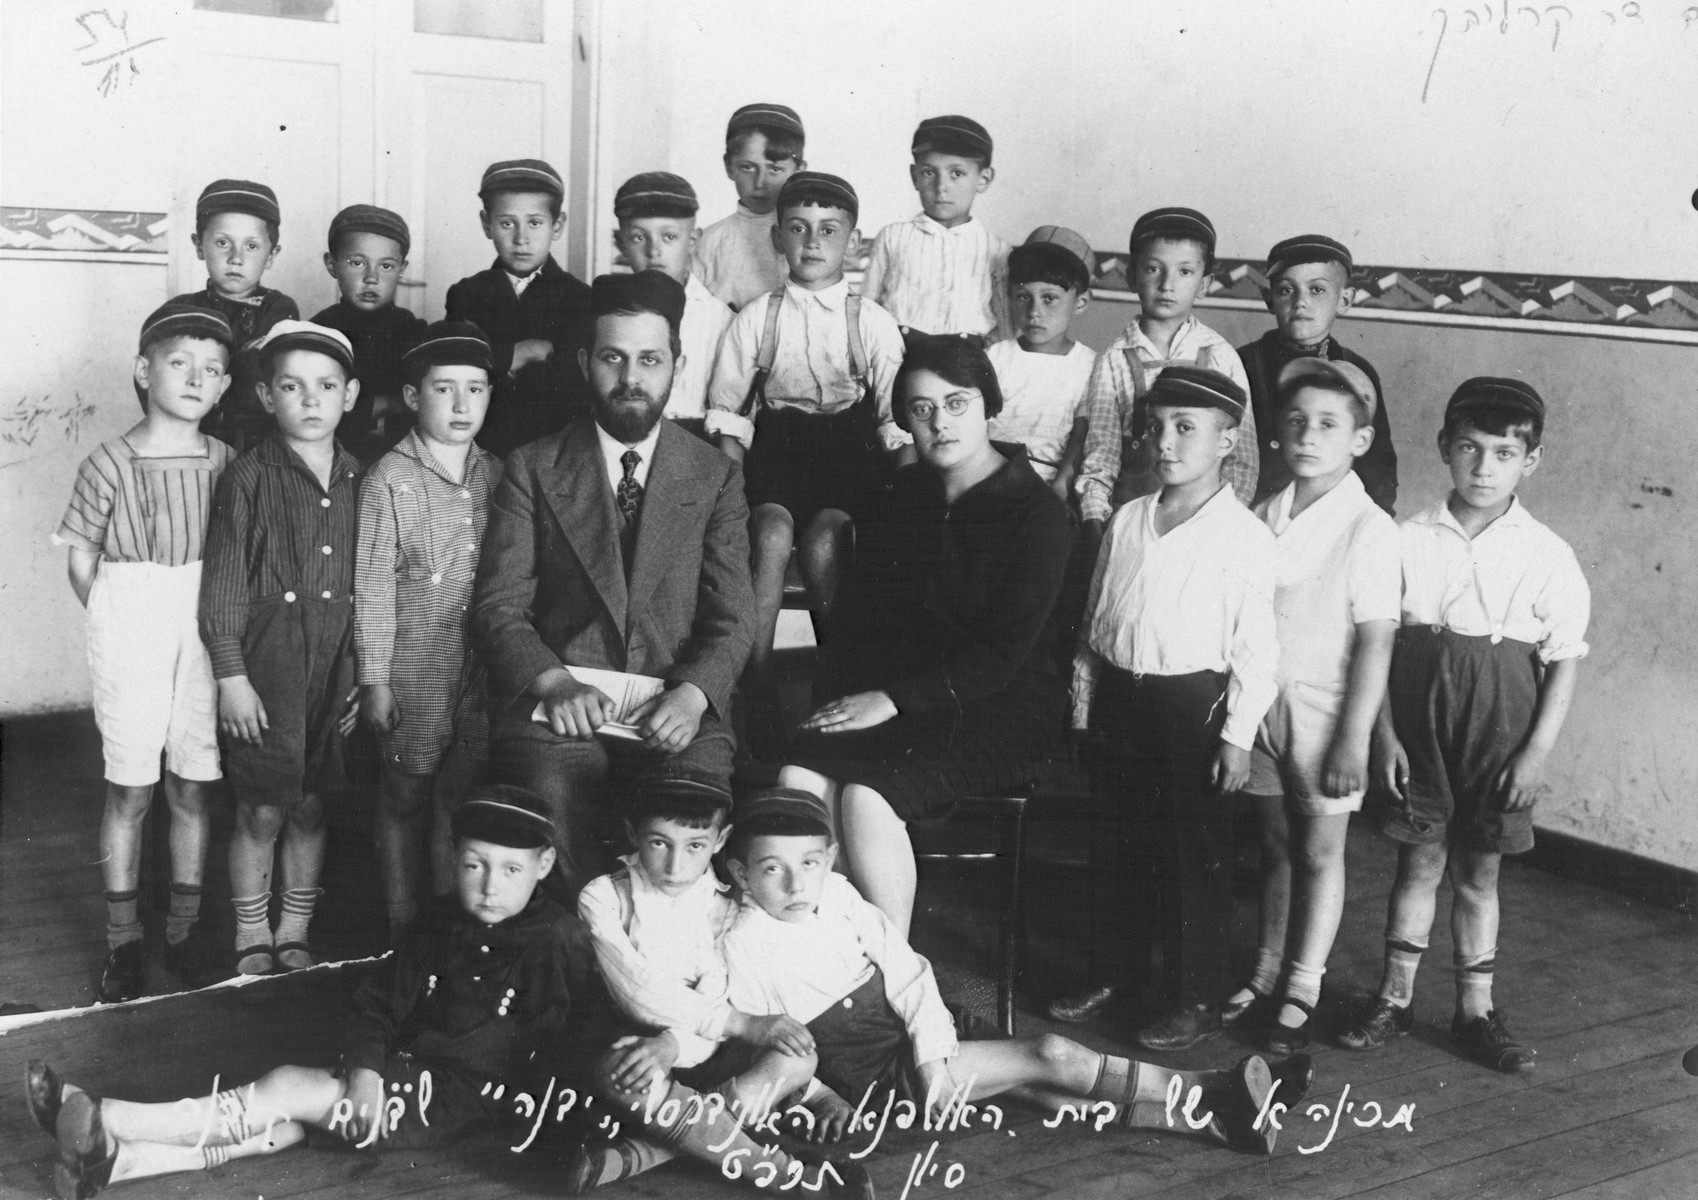 Group portrait of teachers and pupils at the Yavne Hebrew religious school.  Pictured in the center is the instructor, Dr. Karlibach.